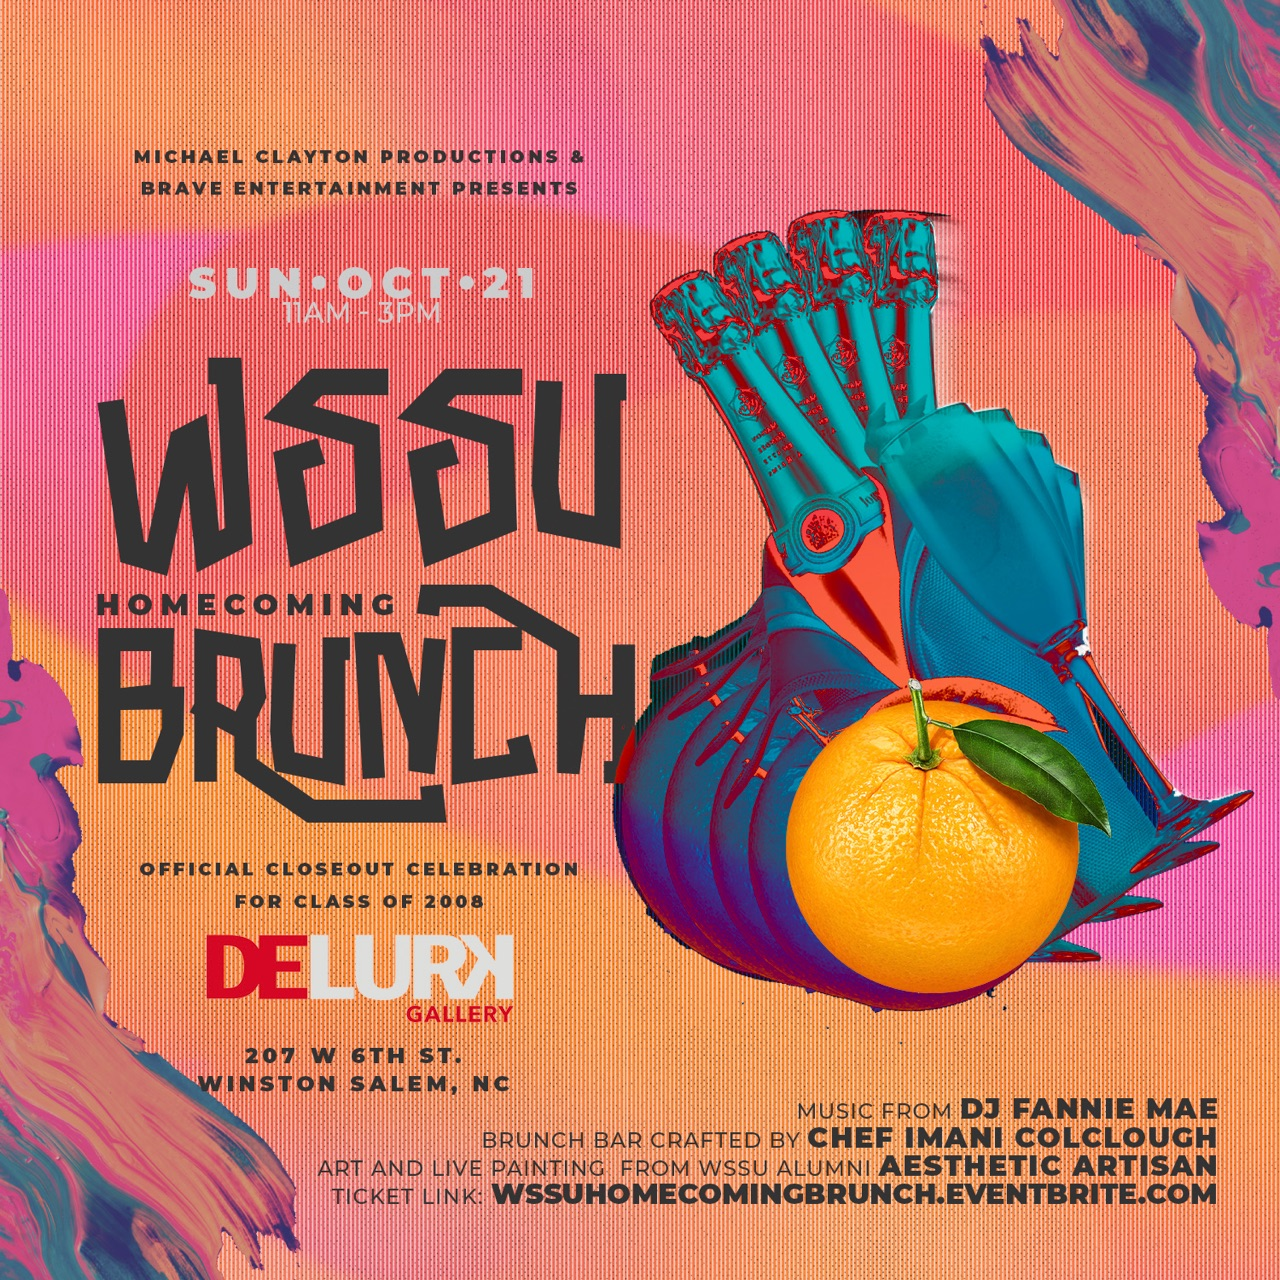 click link below for more - http://wssuhomecomingbrunch.eventbright.com